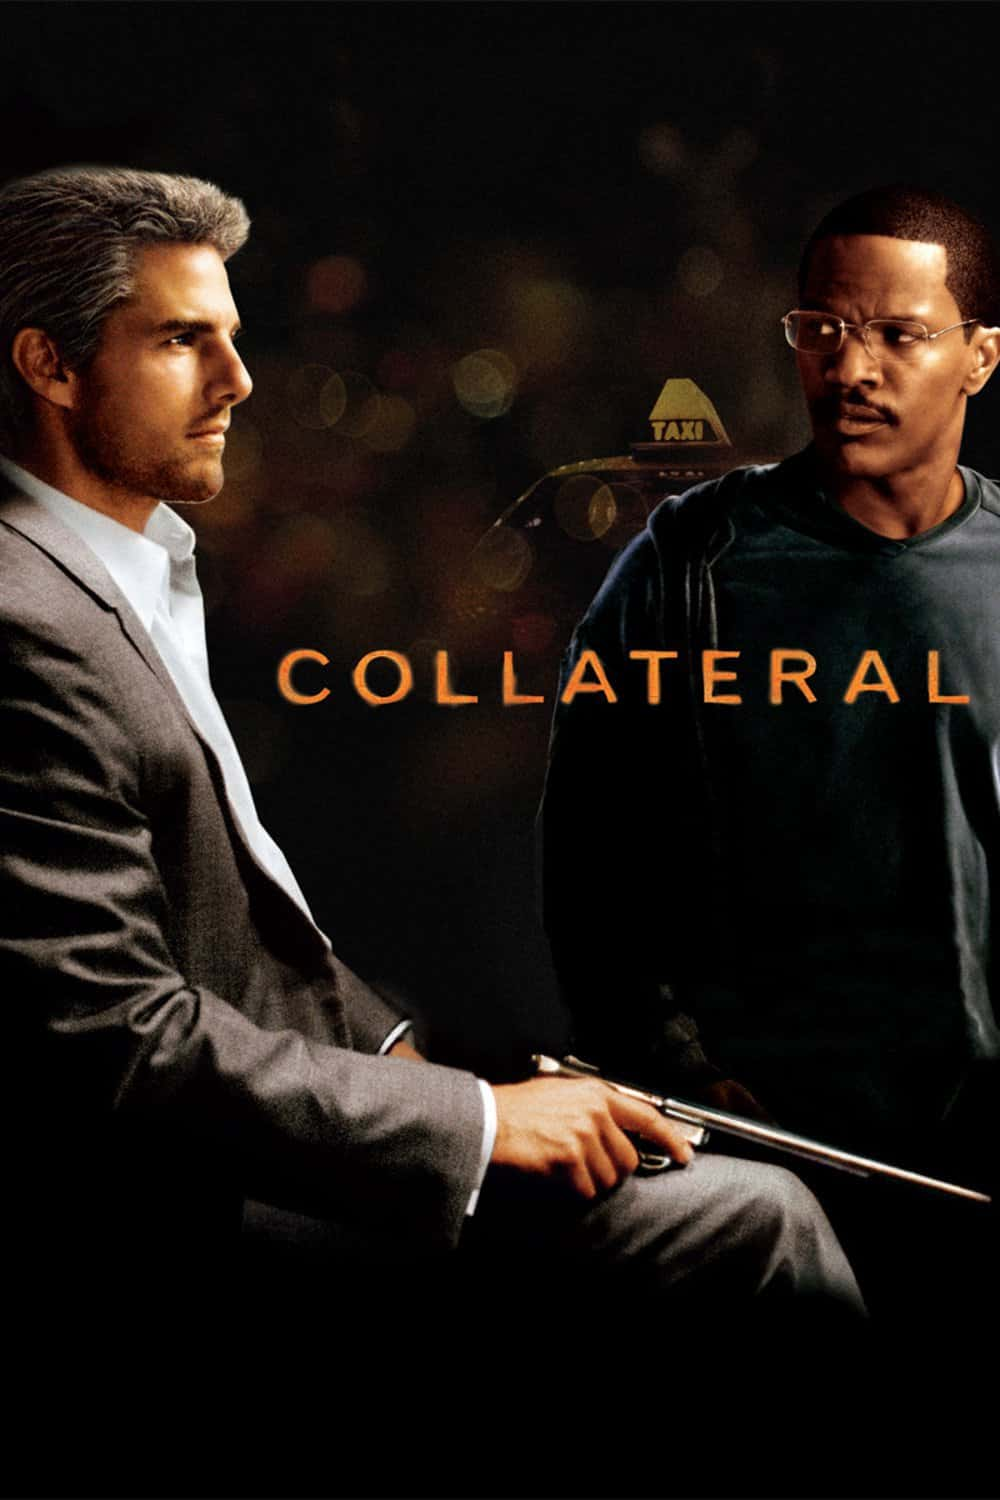 Collateral, 2004